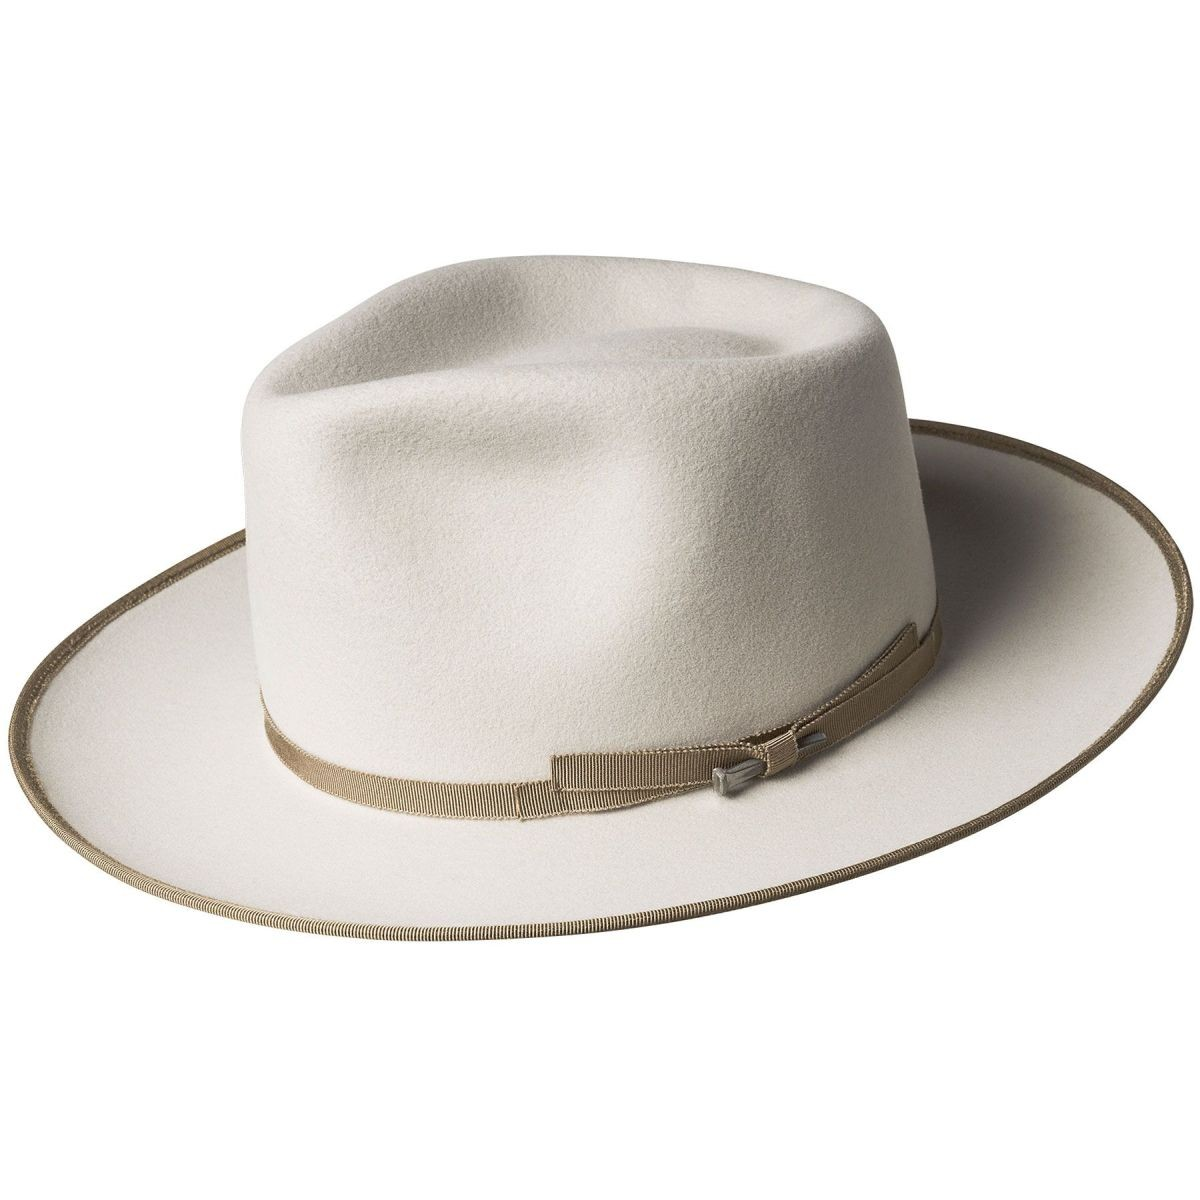 9f5afdc6fa07f Bailey of Hollywood Colver Fedora Hat